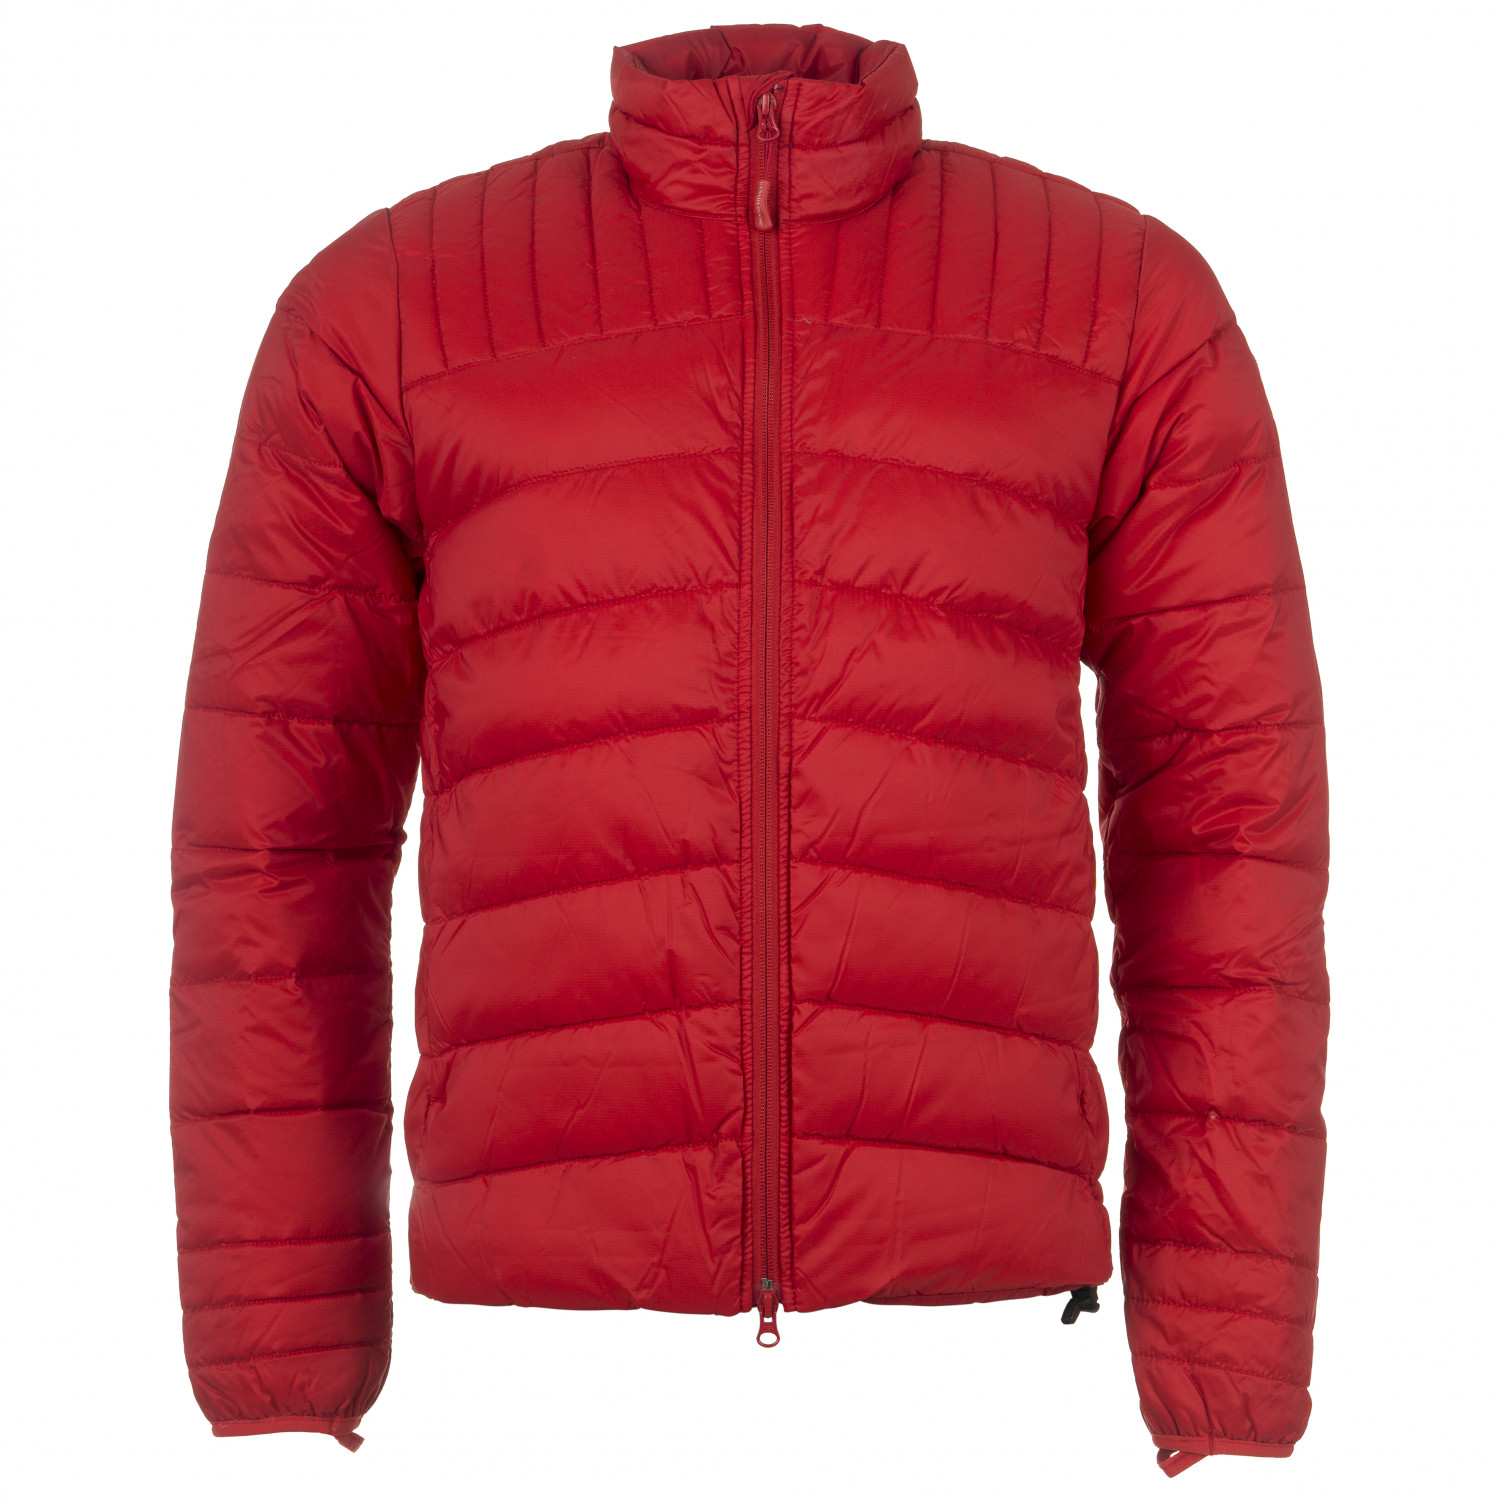 watch 048e8 53f94 Canada Goose - Brookvale Jacket - Giacca in piumino - Red / Black | XS